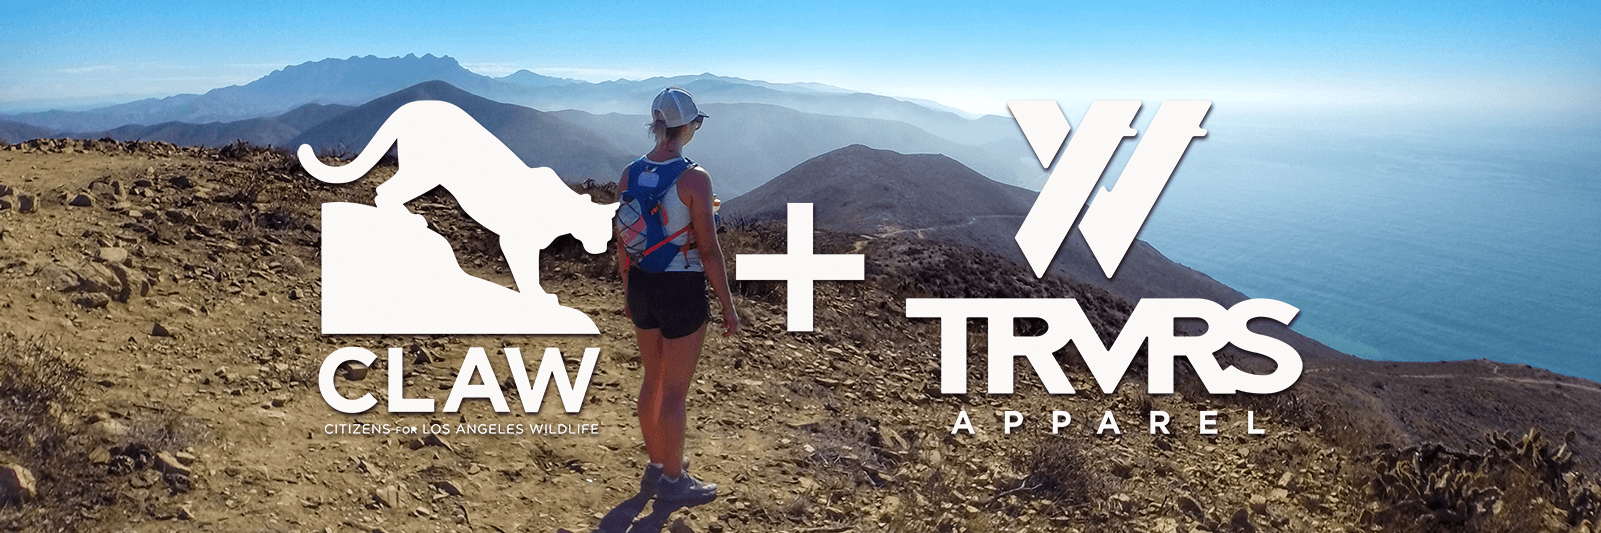 Santa Monica Mountains Ocean View Photo By Andrew Tyler | TRVRS APPAREL